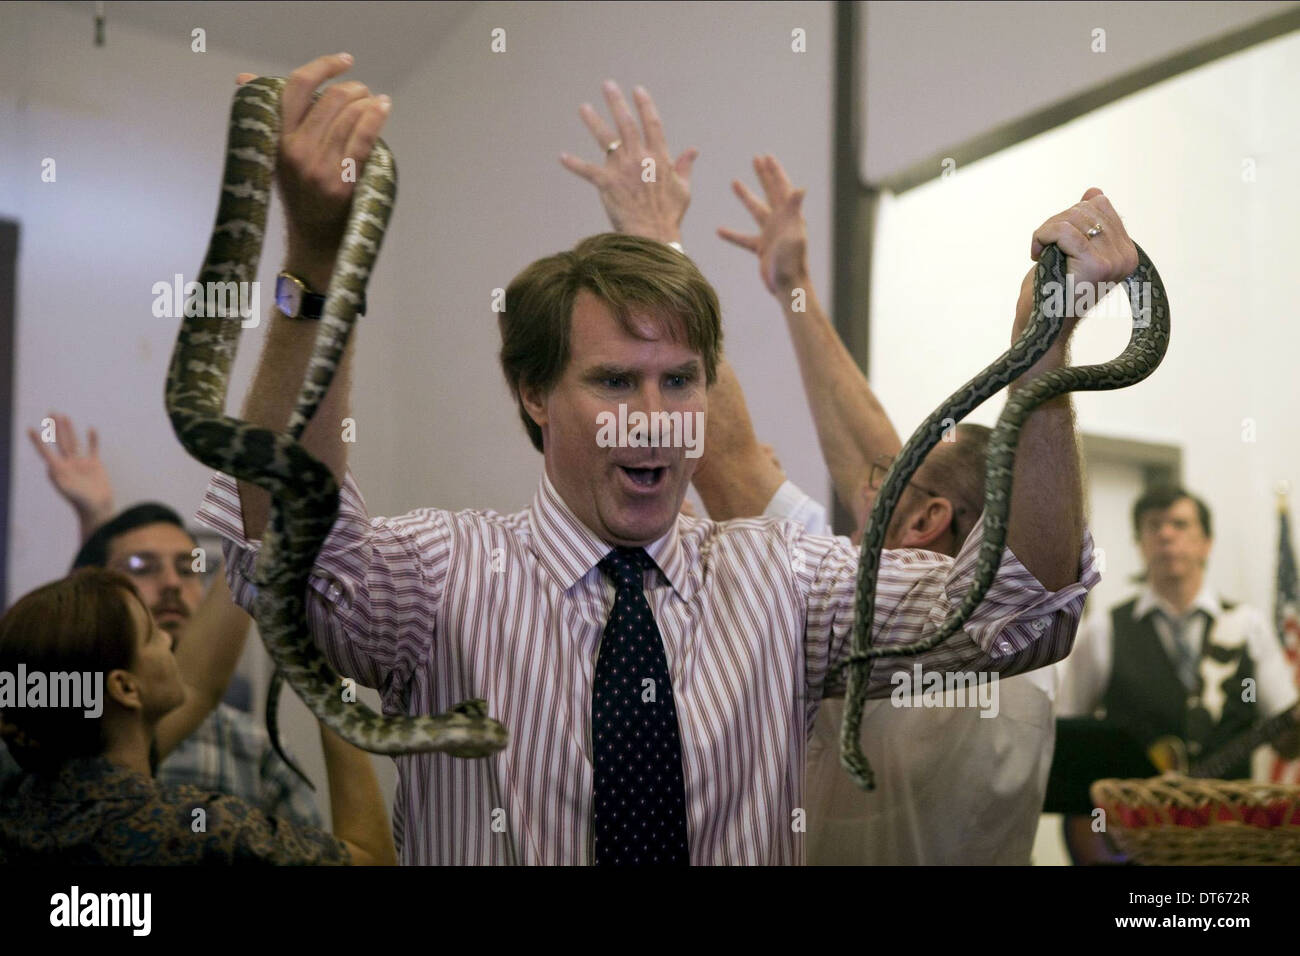 WILL FERRELL THE CAMPAIGN (2012) - Stock Image